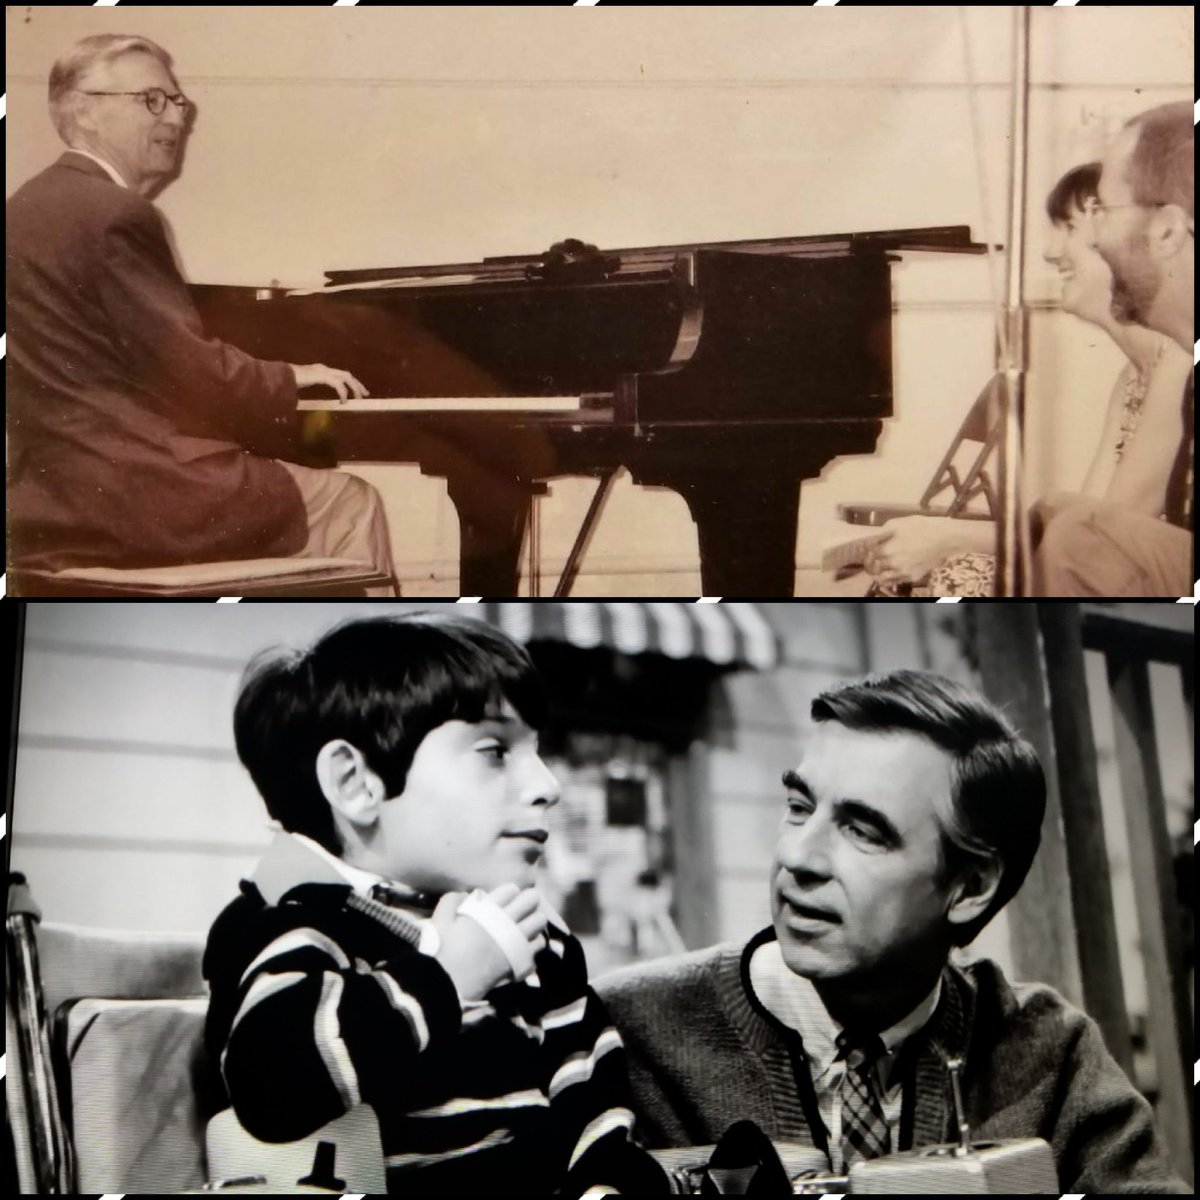 Saleem Ghubril On Twitter The Iconic Image Of Mr Rogers With His Young Friend Jeff Erlanger Below The Not So Iconic But Very Special To Us Is The Evening Mr Rogers Visited